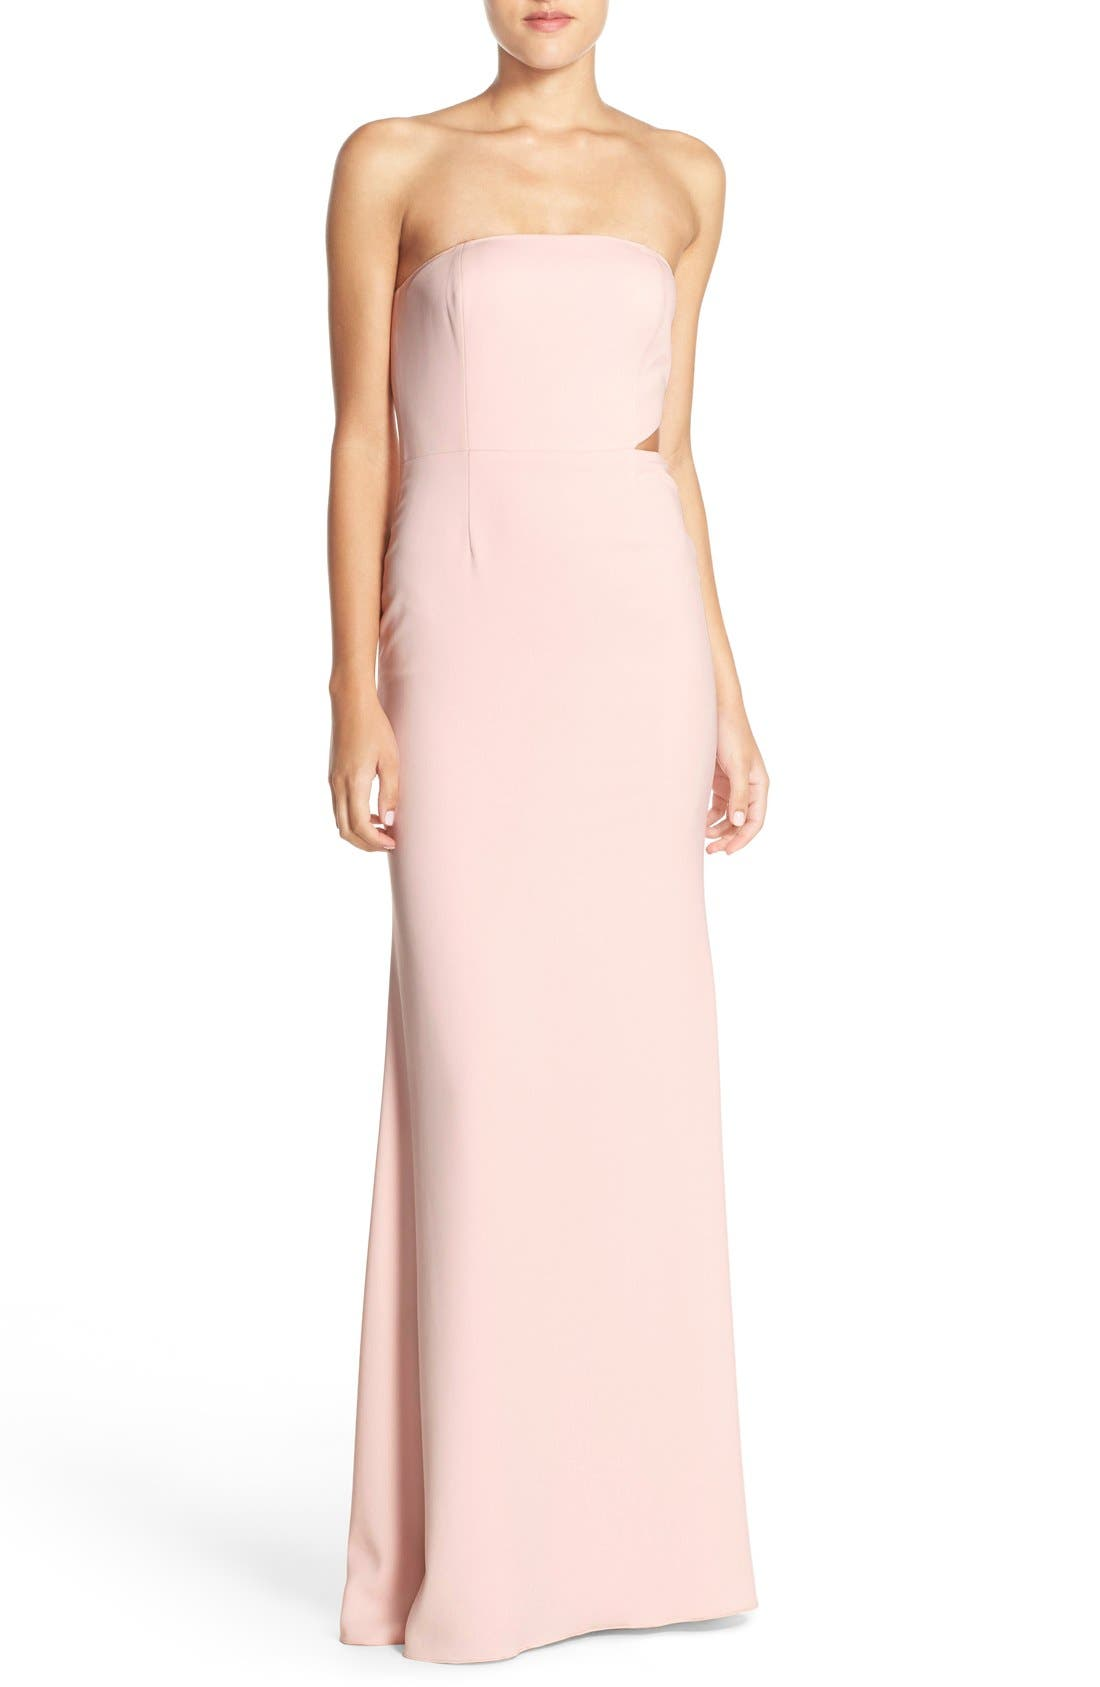 Alternate Image 1 Selected - Jay Godfrey Strapless Cutout Gown